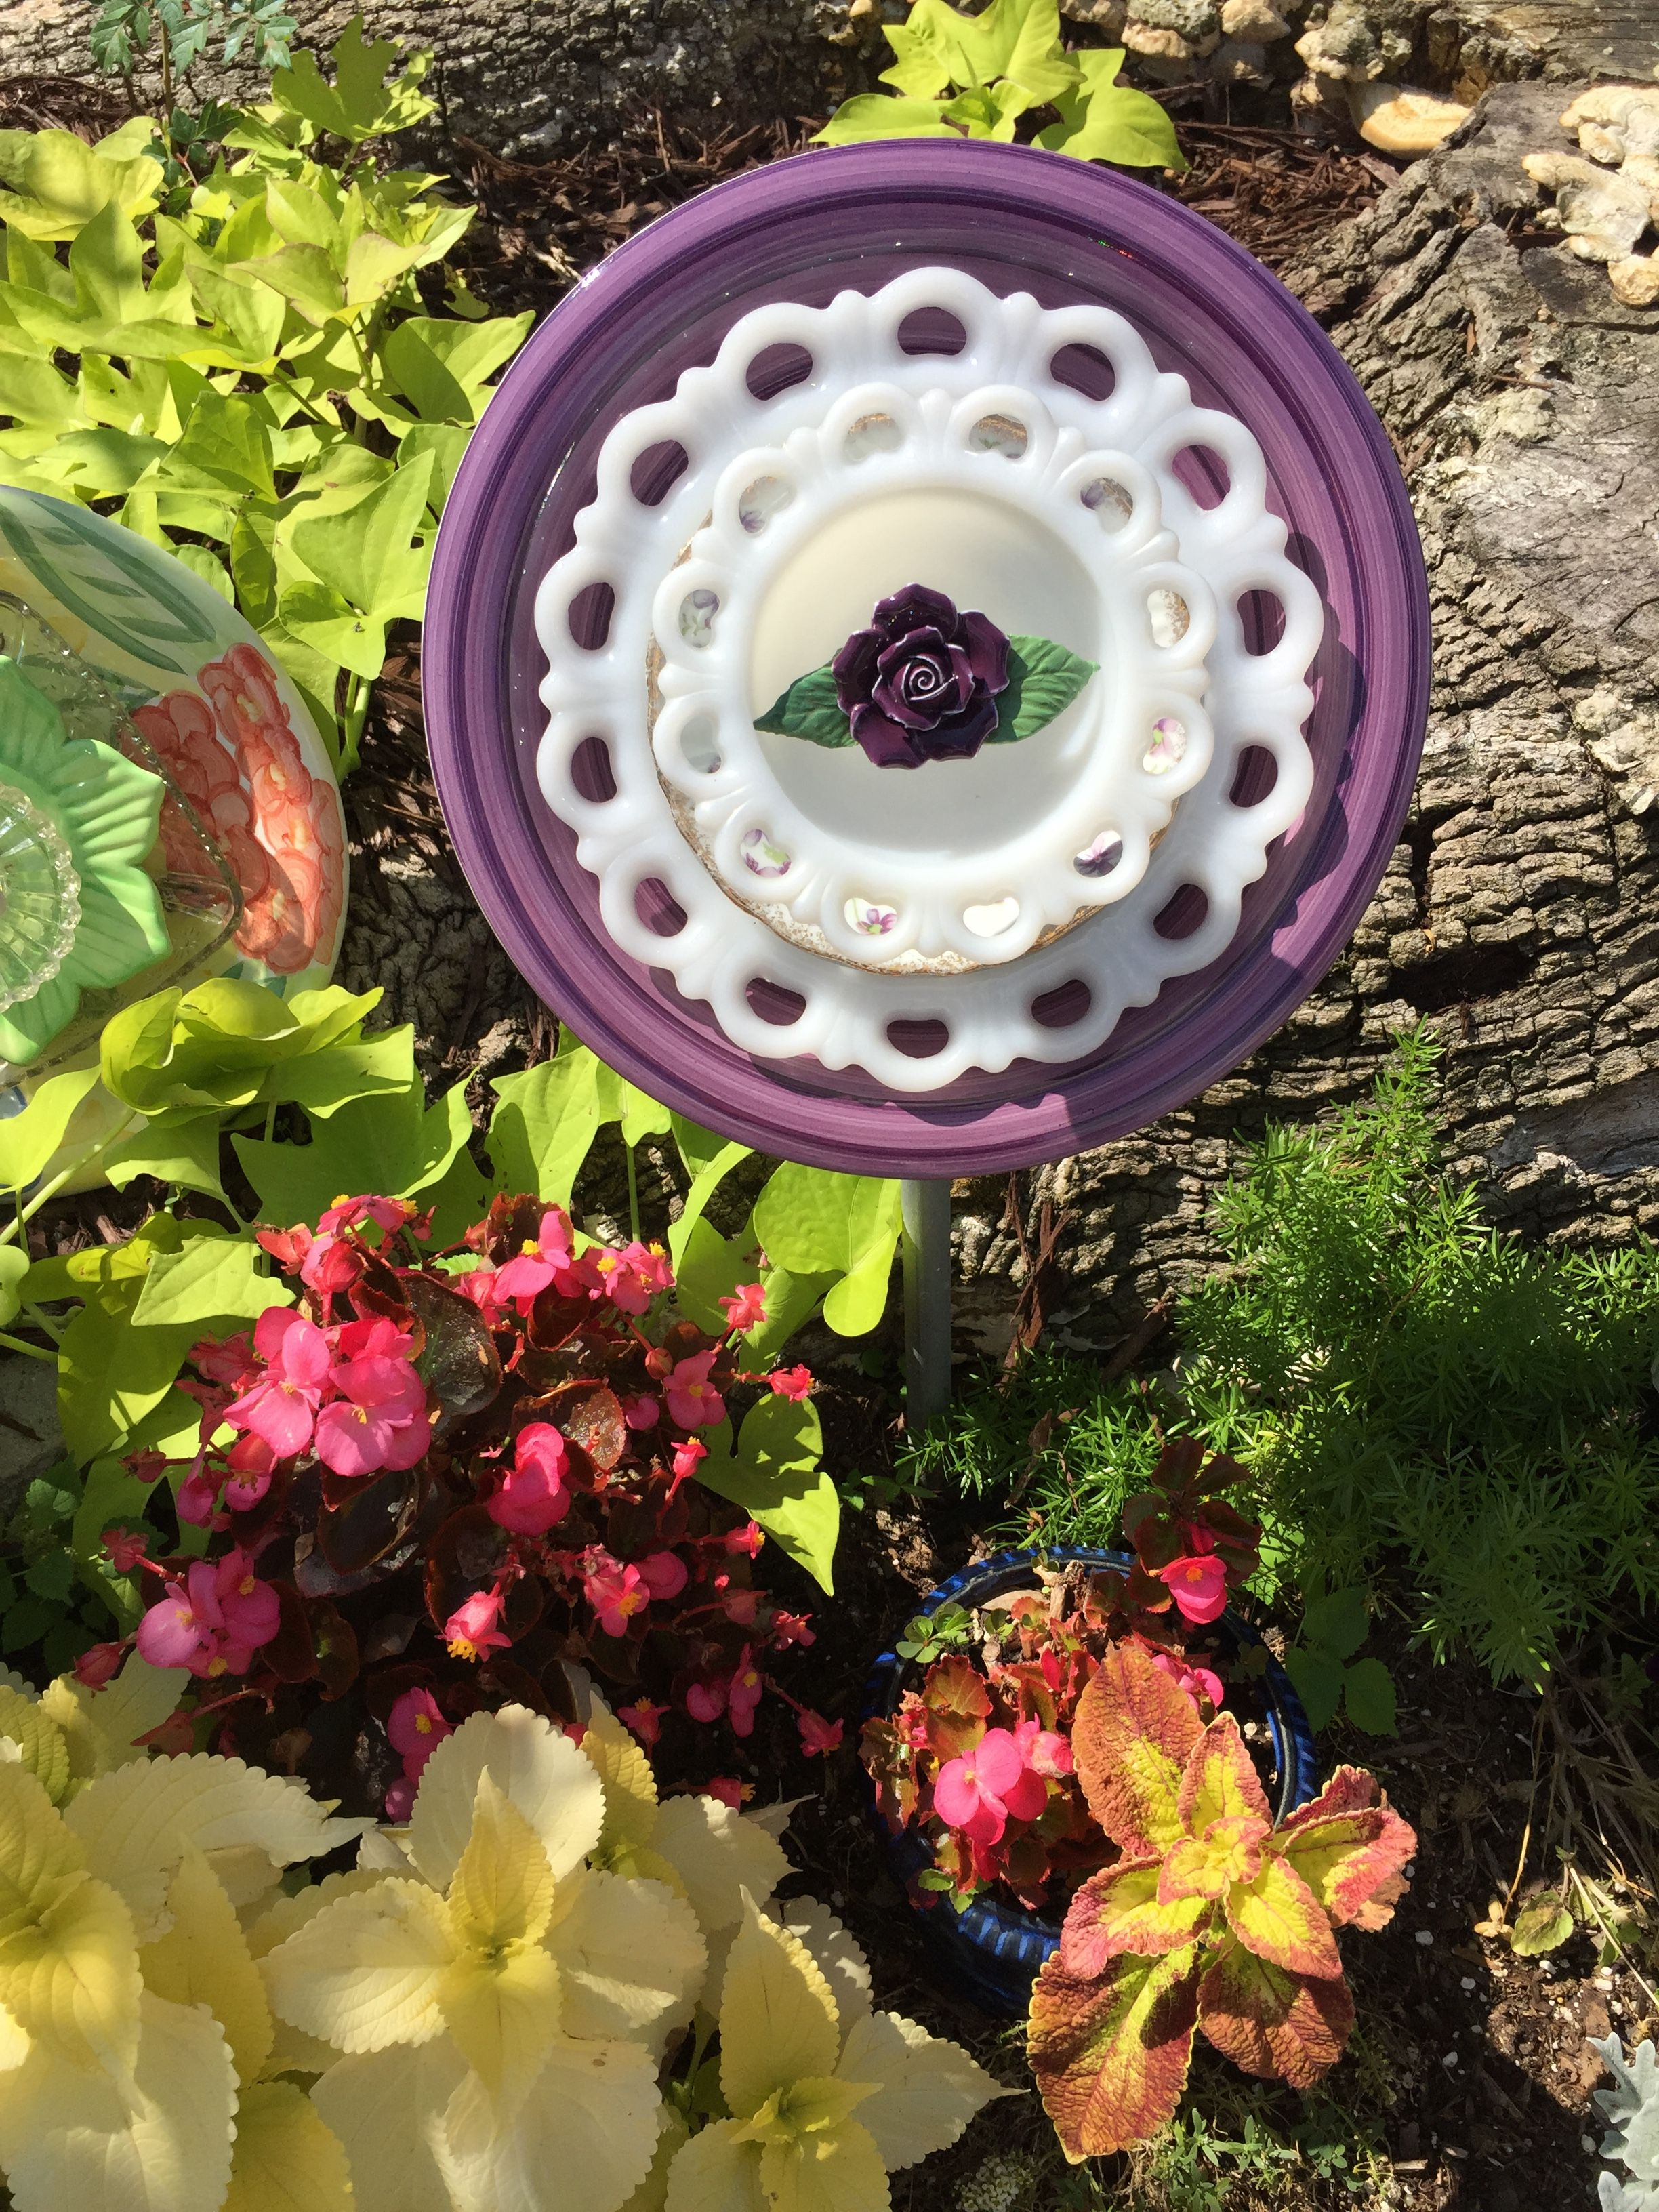 Another Purple And White Flower Using Milk Glass And A Purple Center